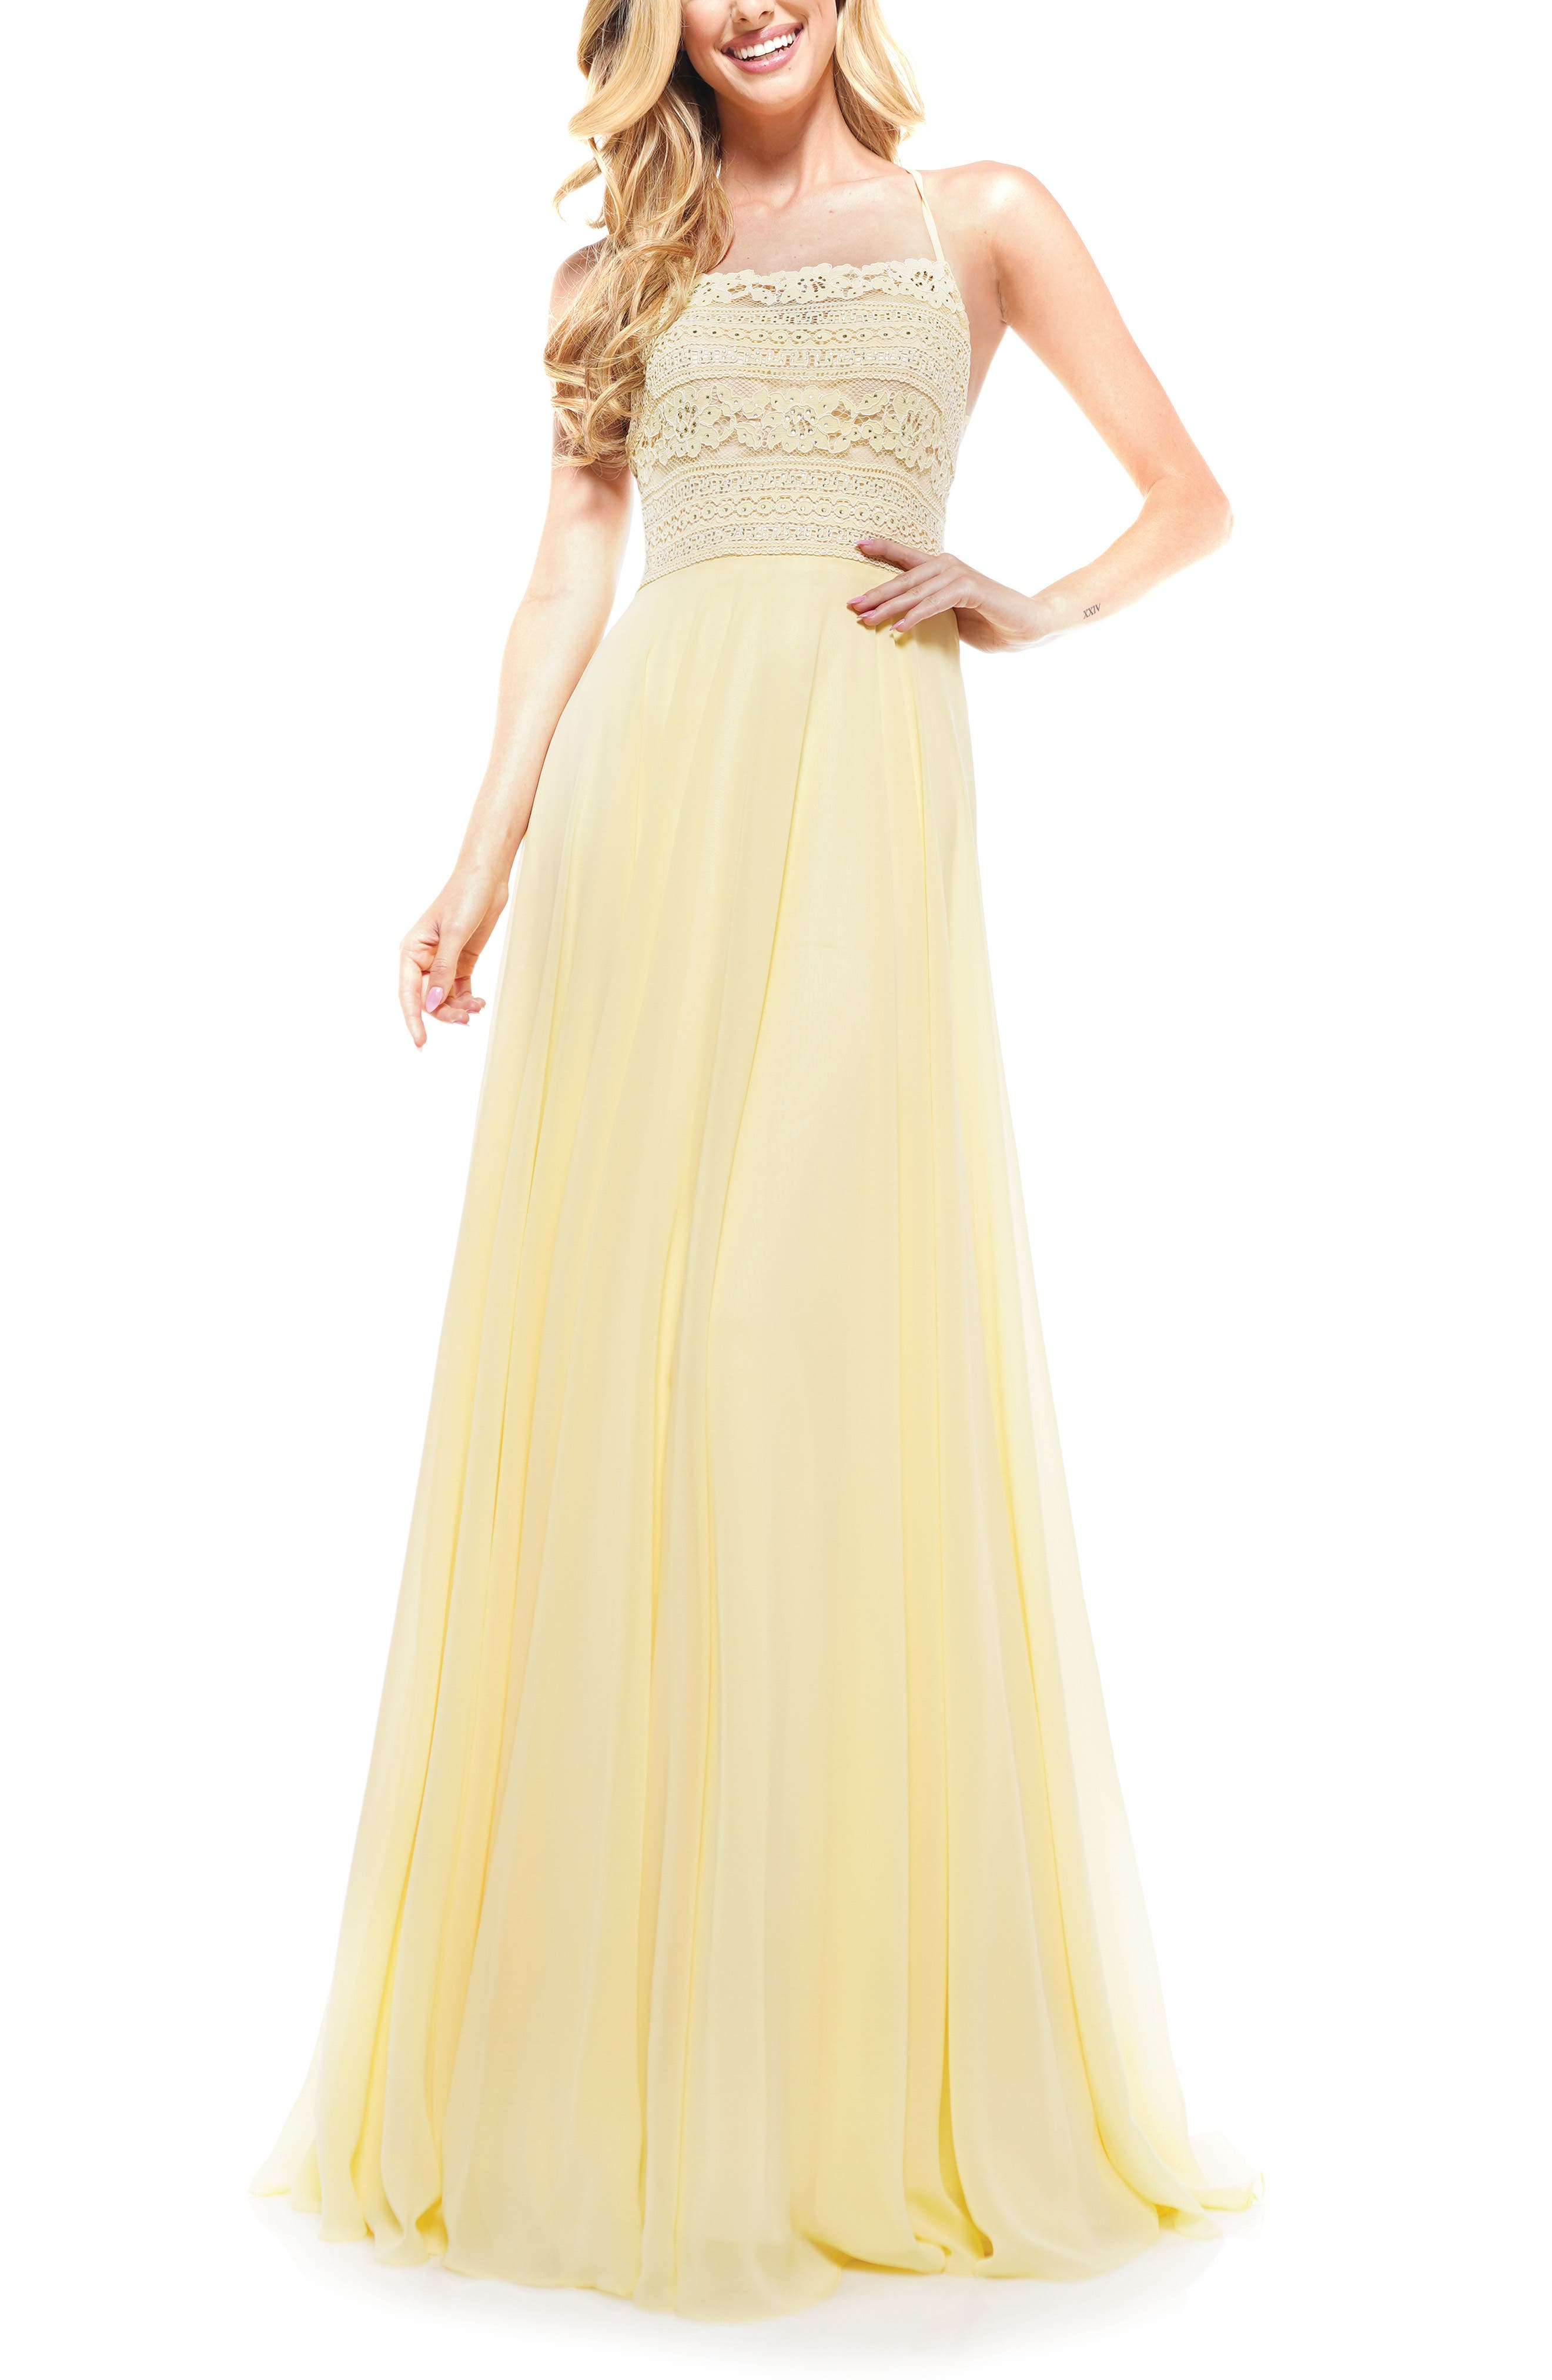 70s Prom, Formal, Evening, Party Dresses Womens Colors Dress Lace Strappy Back Chiffon Gown Size 16 - Yellow $262.00 AT vintagedancer.com